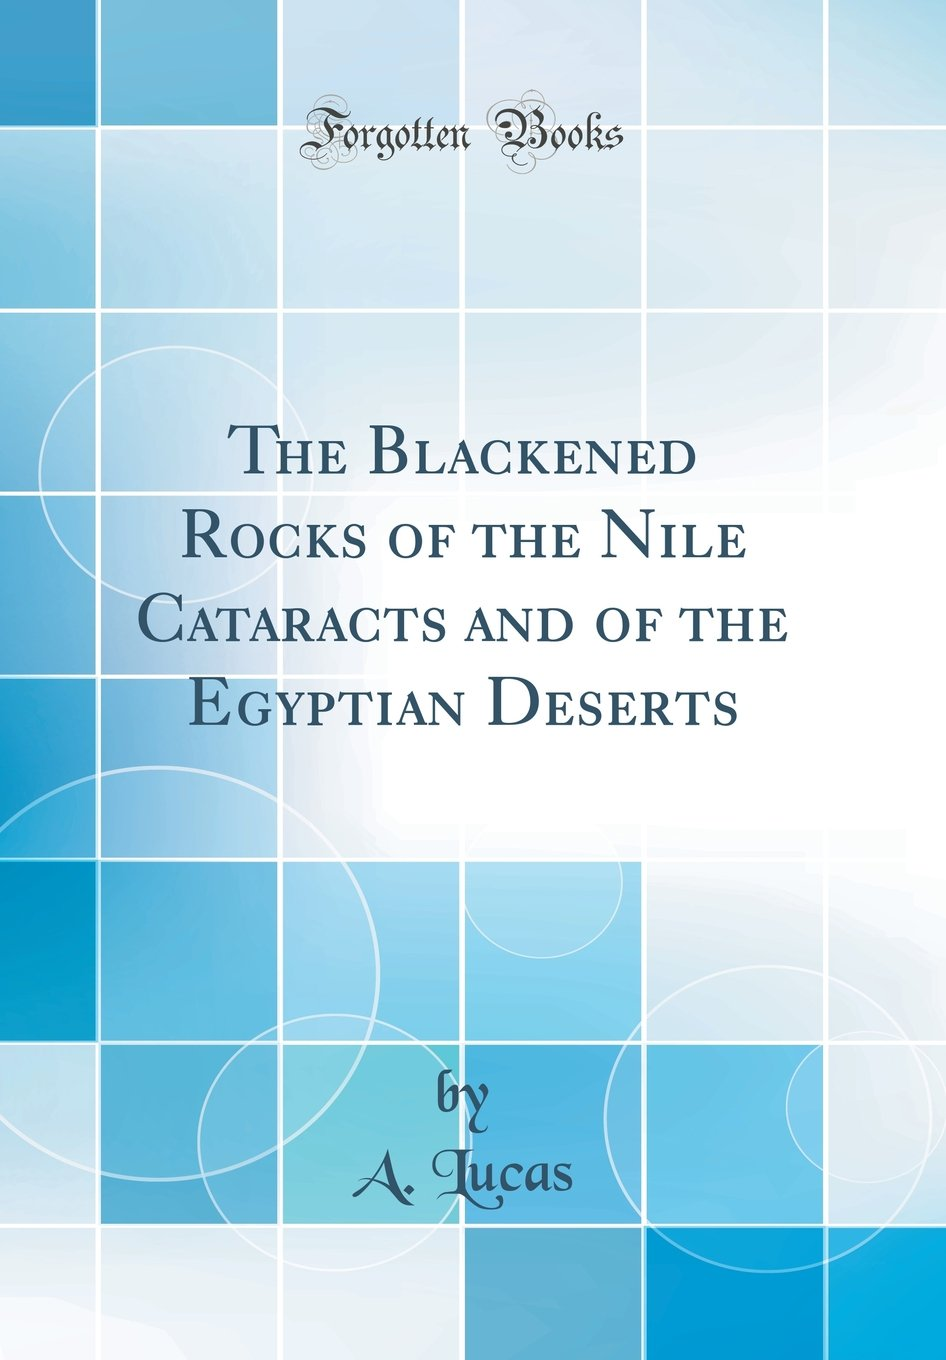 The Blackened Rocks Of The Nile Cataracts And Of The Egyptian